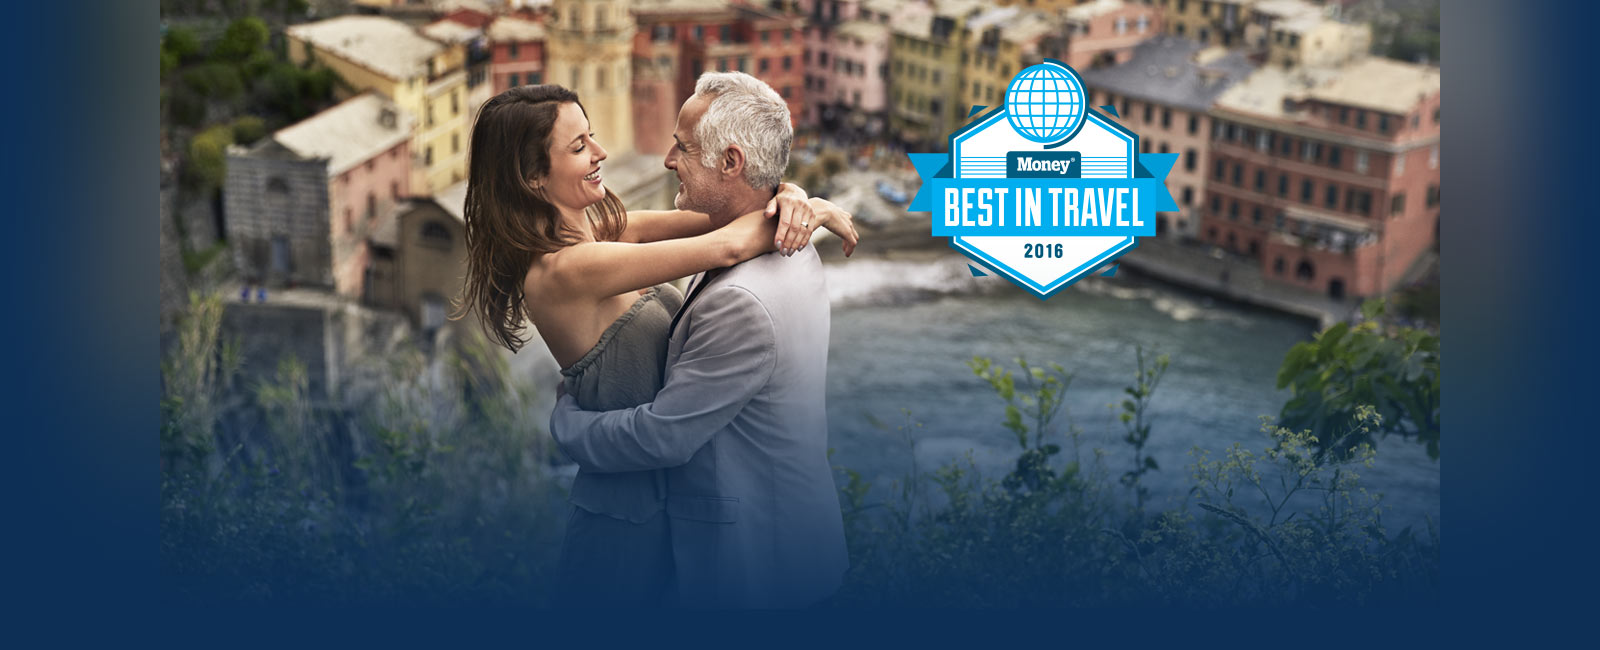 Best in Travel 2016 award from Money. Couple embracing with seaside Italian Village as their backdrop.